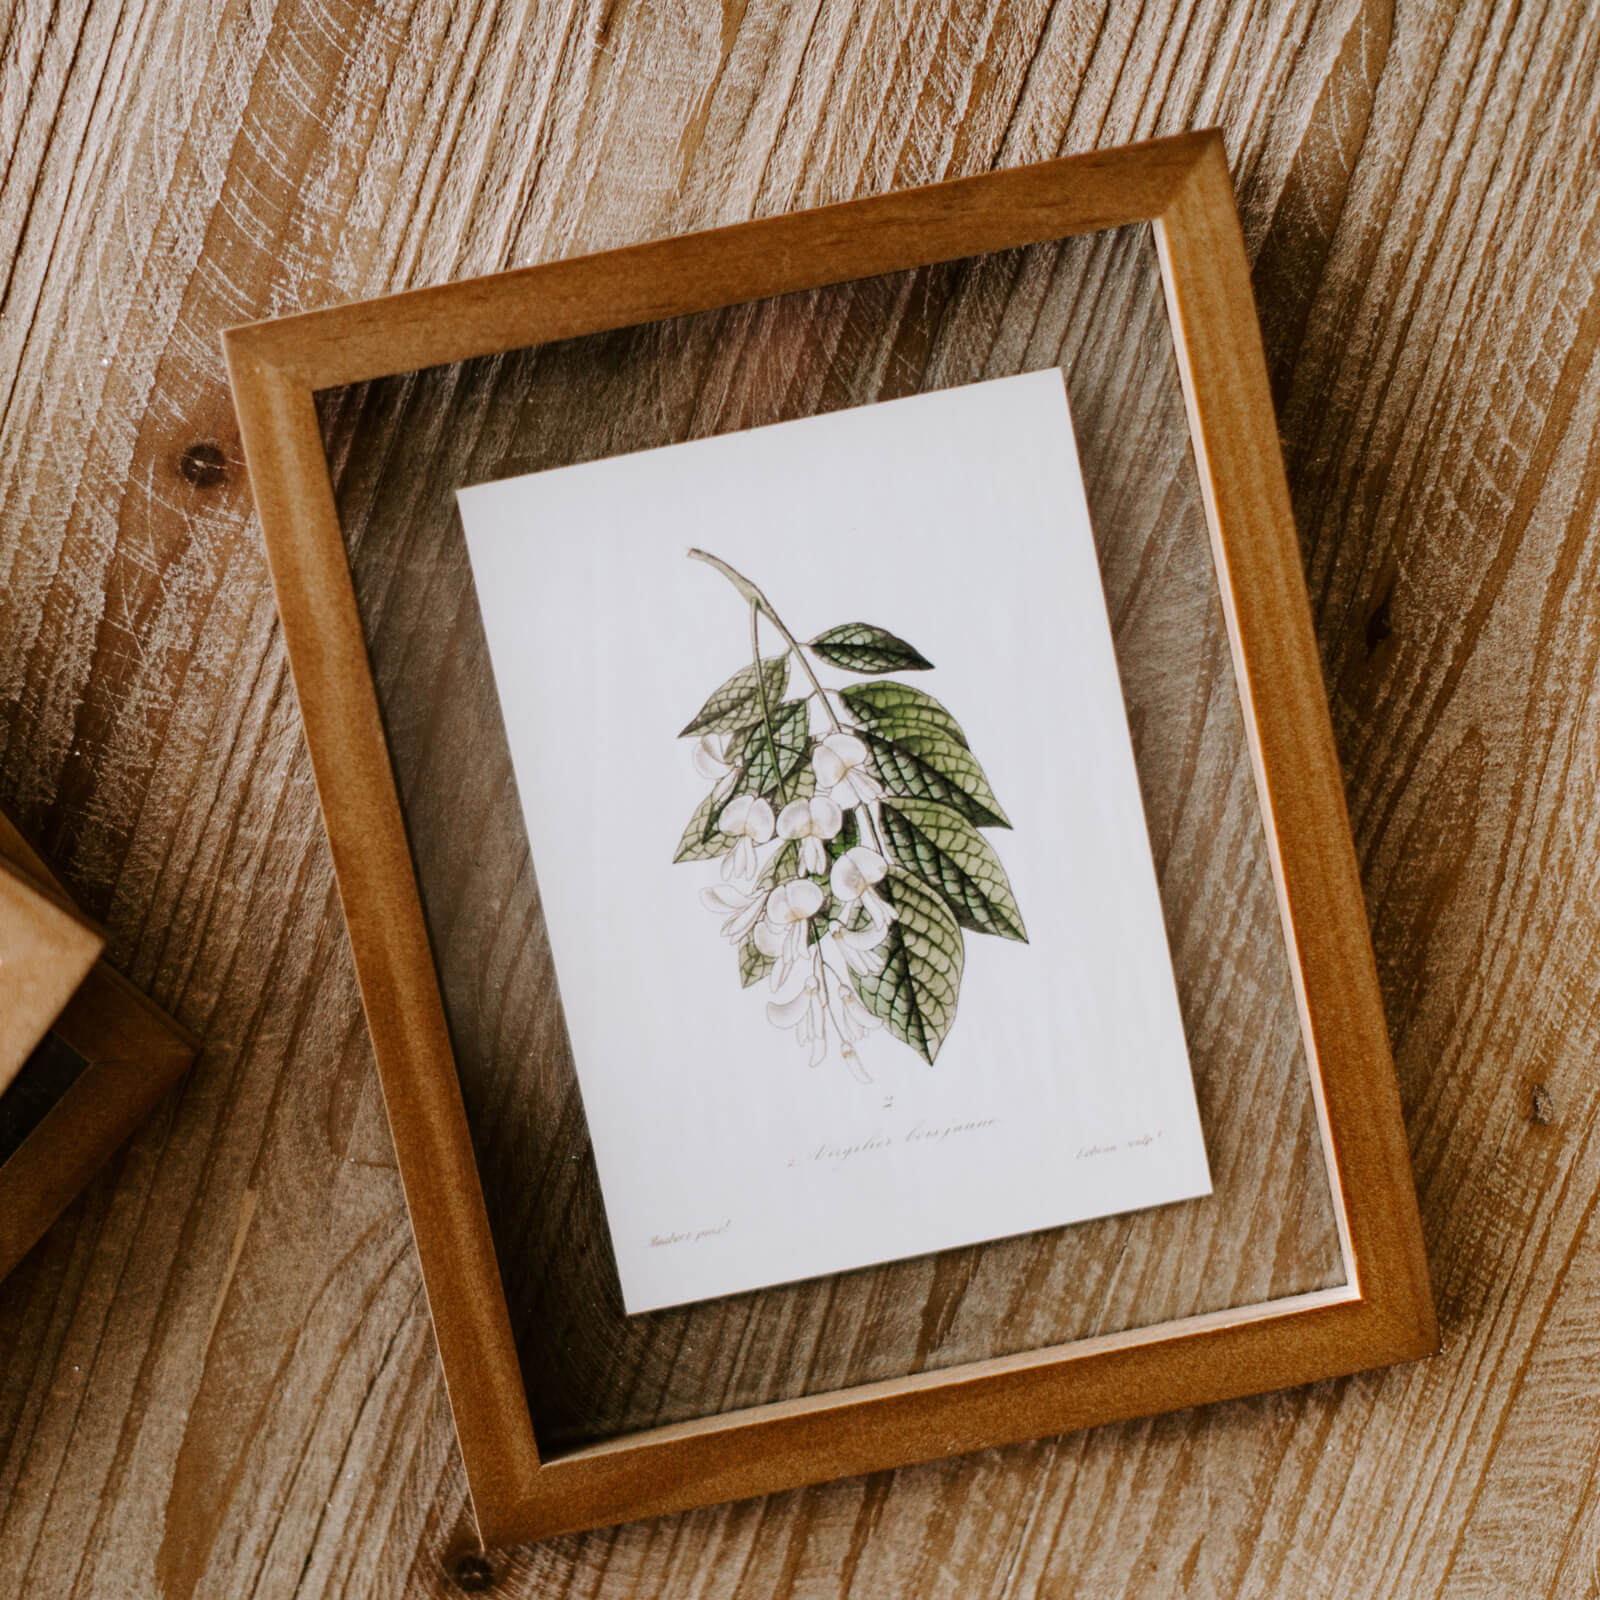 A framed botanical illustration of small white flowers and green leaves inside a wooden frame resting on a tabletop